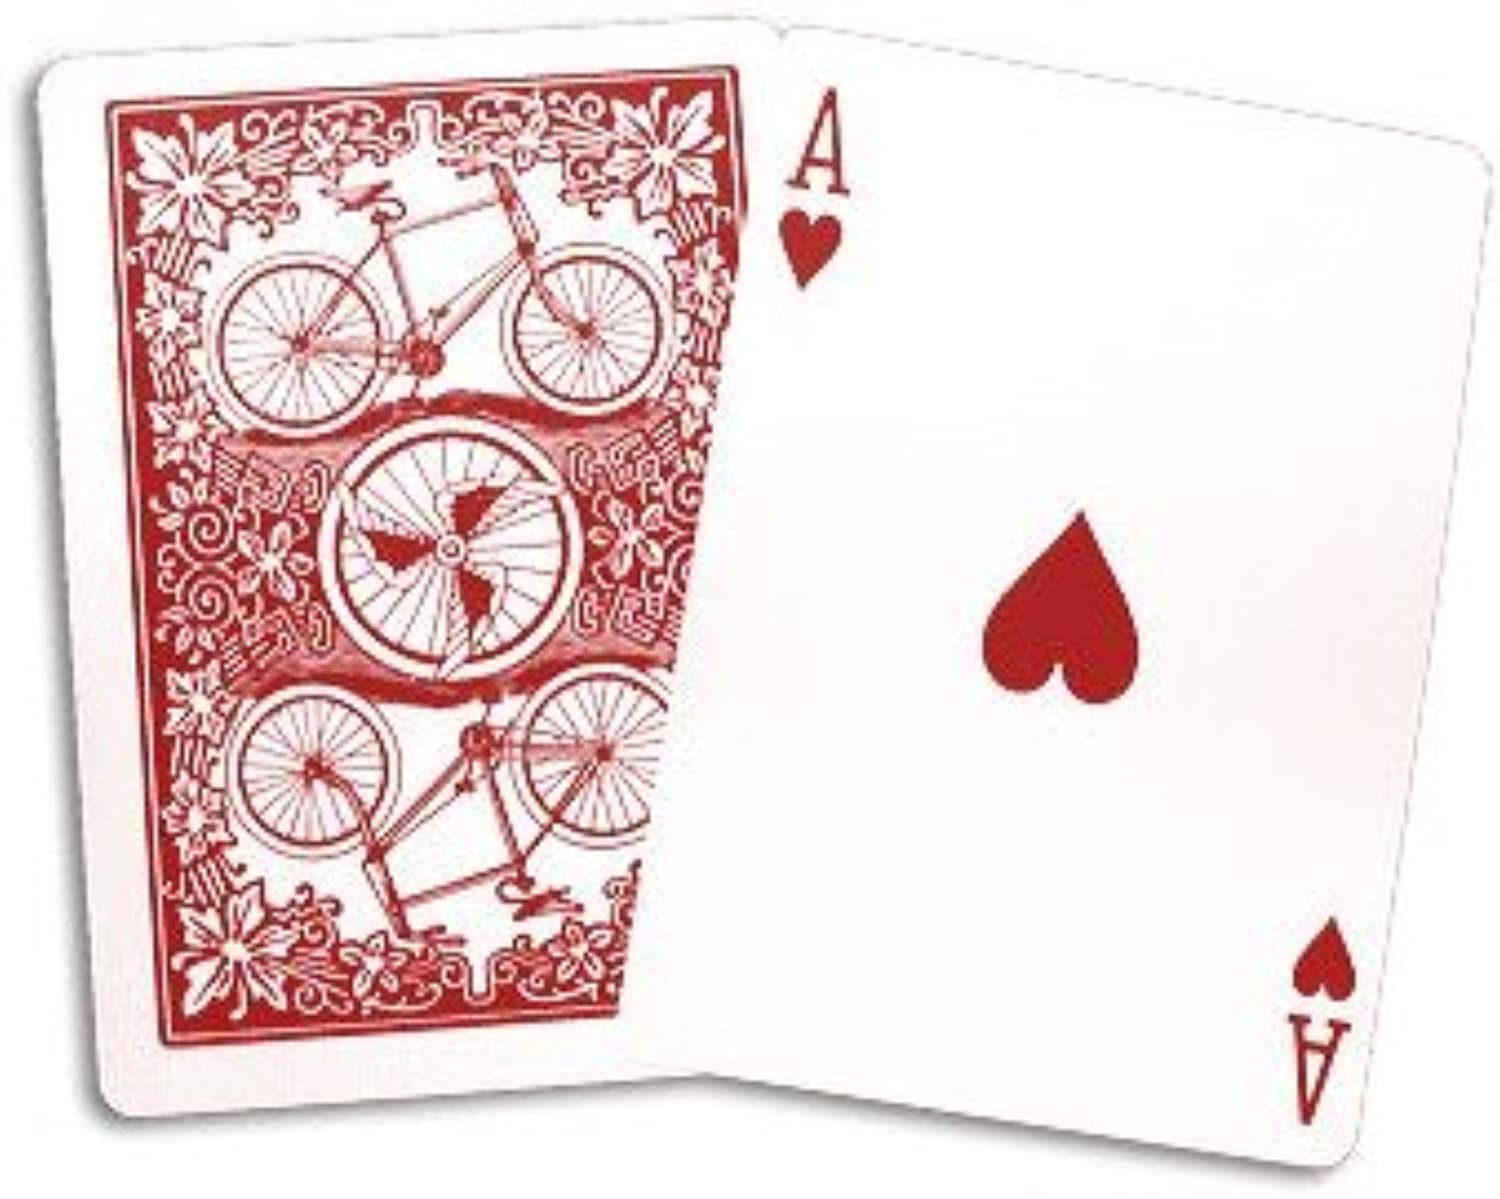 Bicycle league back - Red Back (US Playing Card Company)